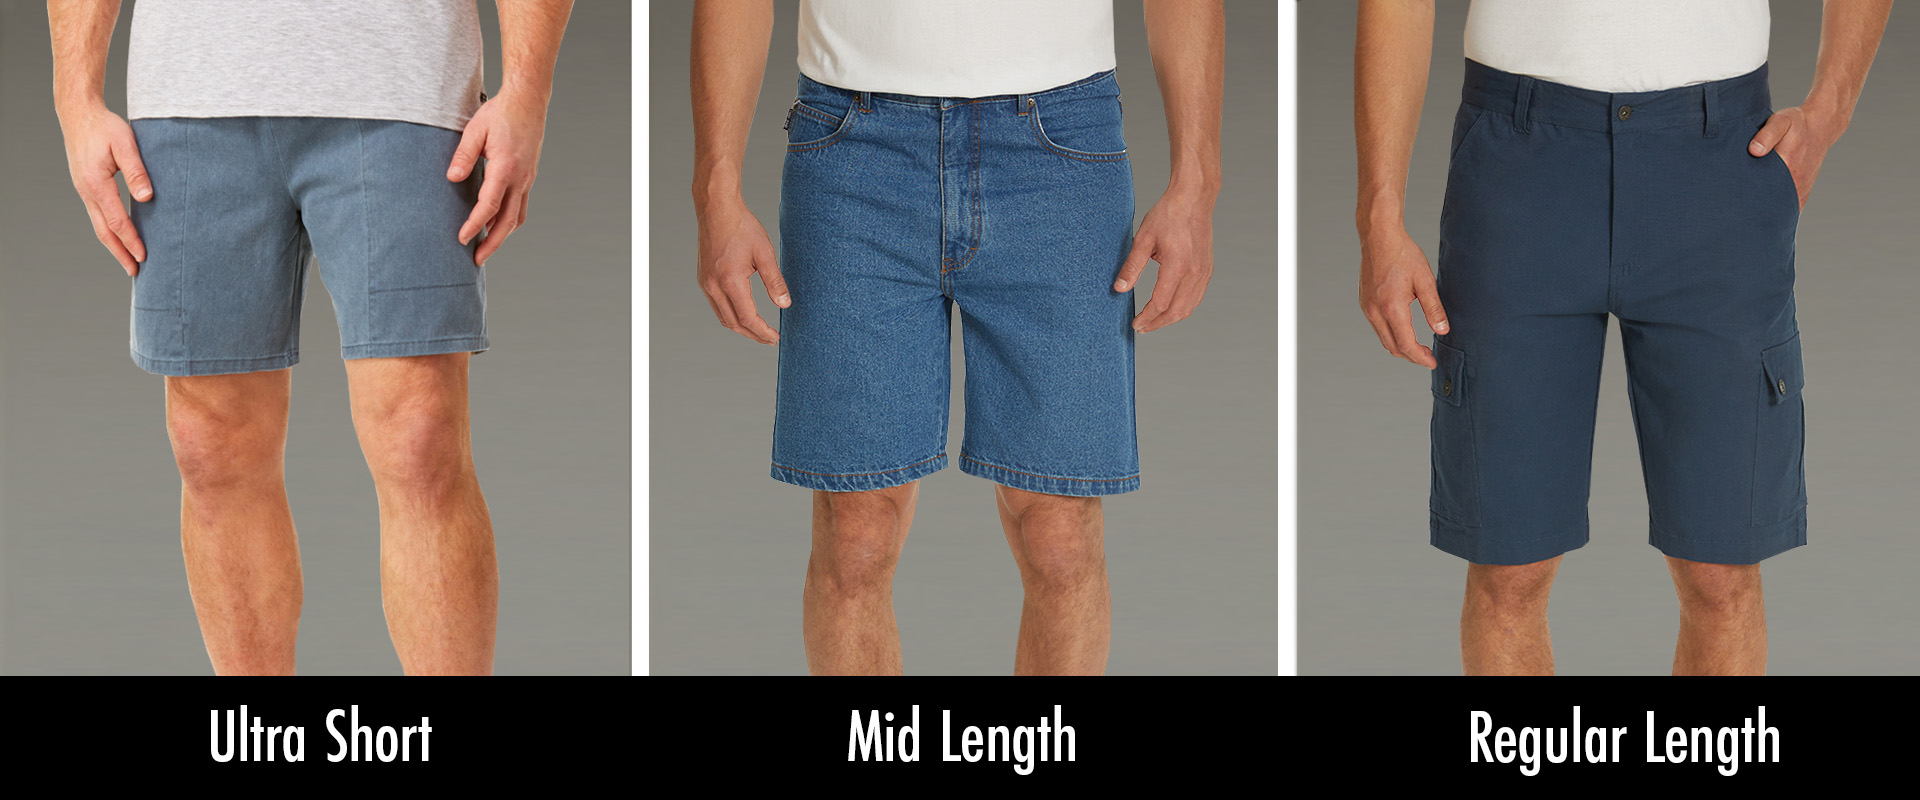 Shorts for men: How short is too short?